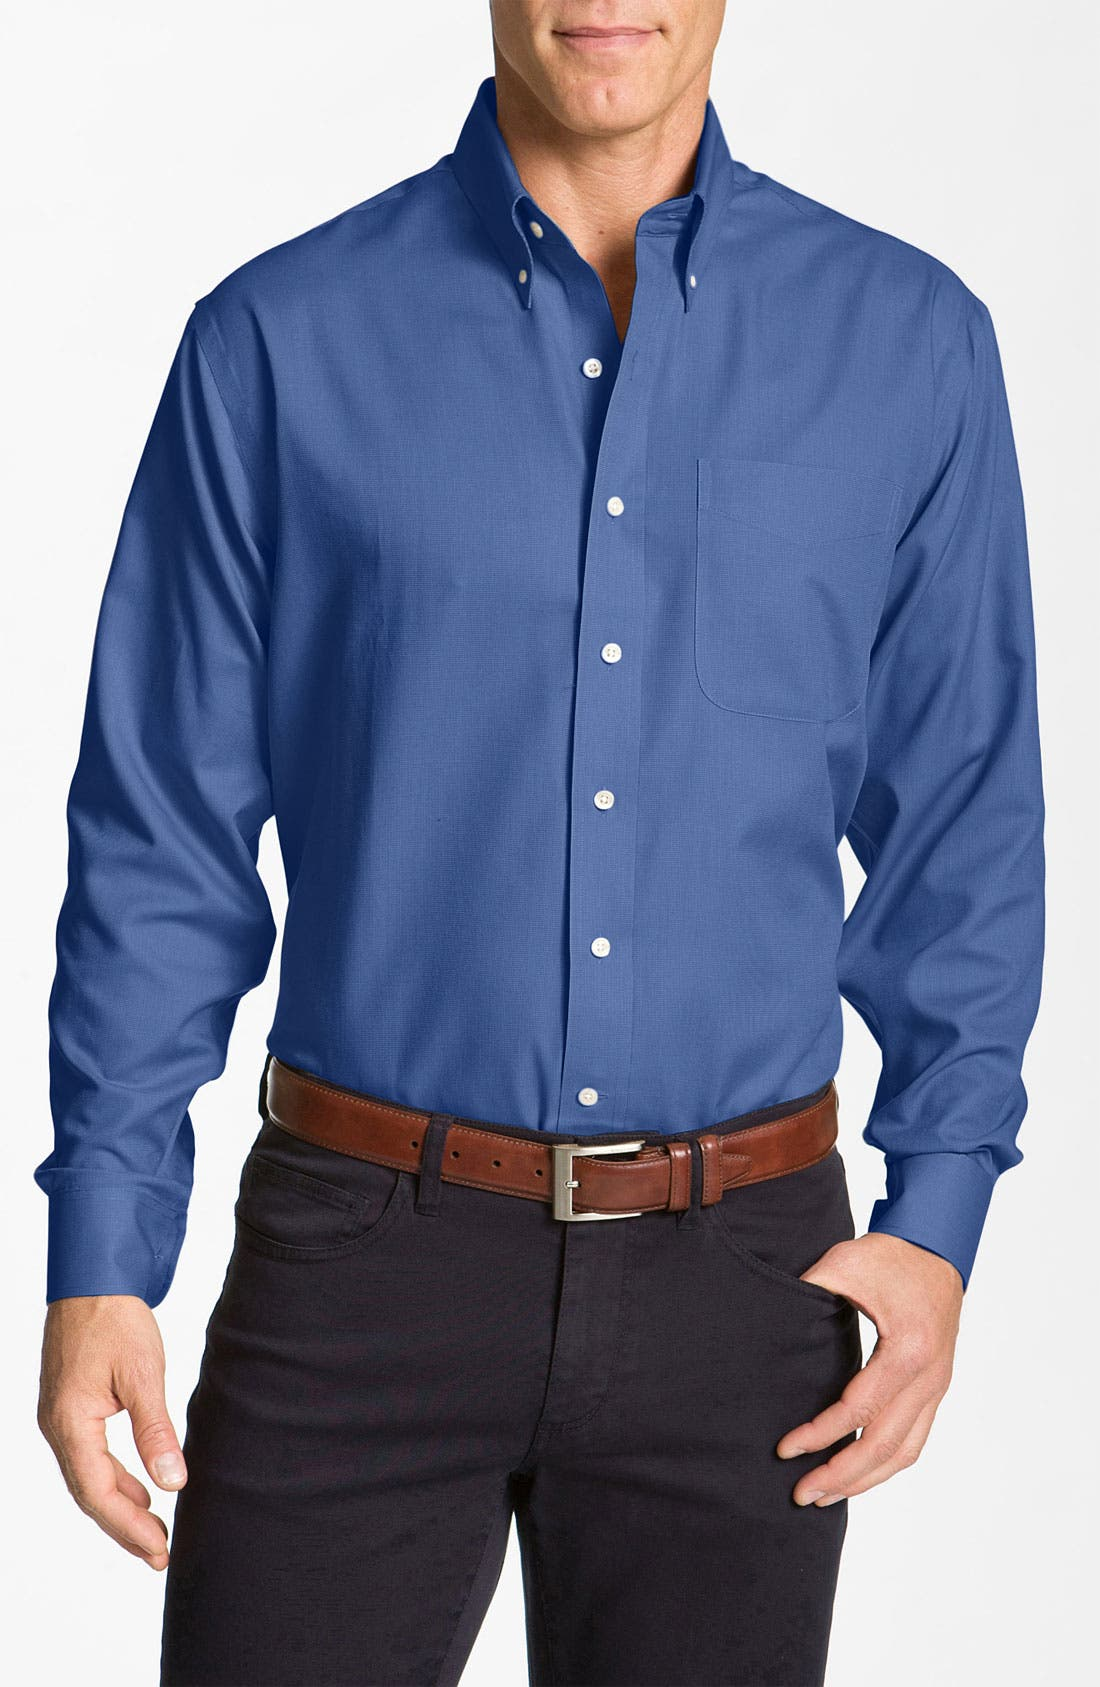 Cutter & Buck 'Nailshead - Epic Easy Care' Classic Fit Sport Shirt (Big & Tall)